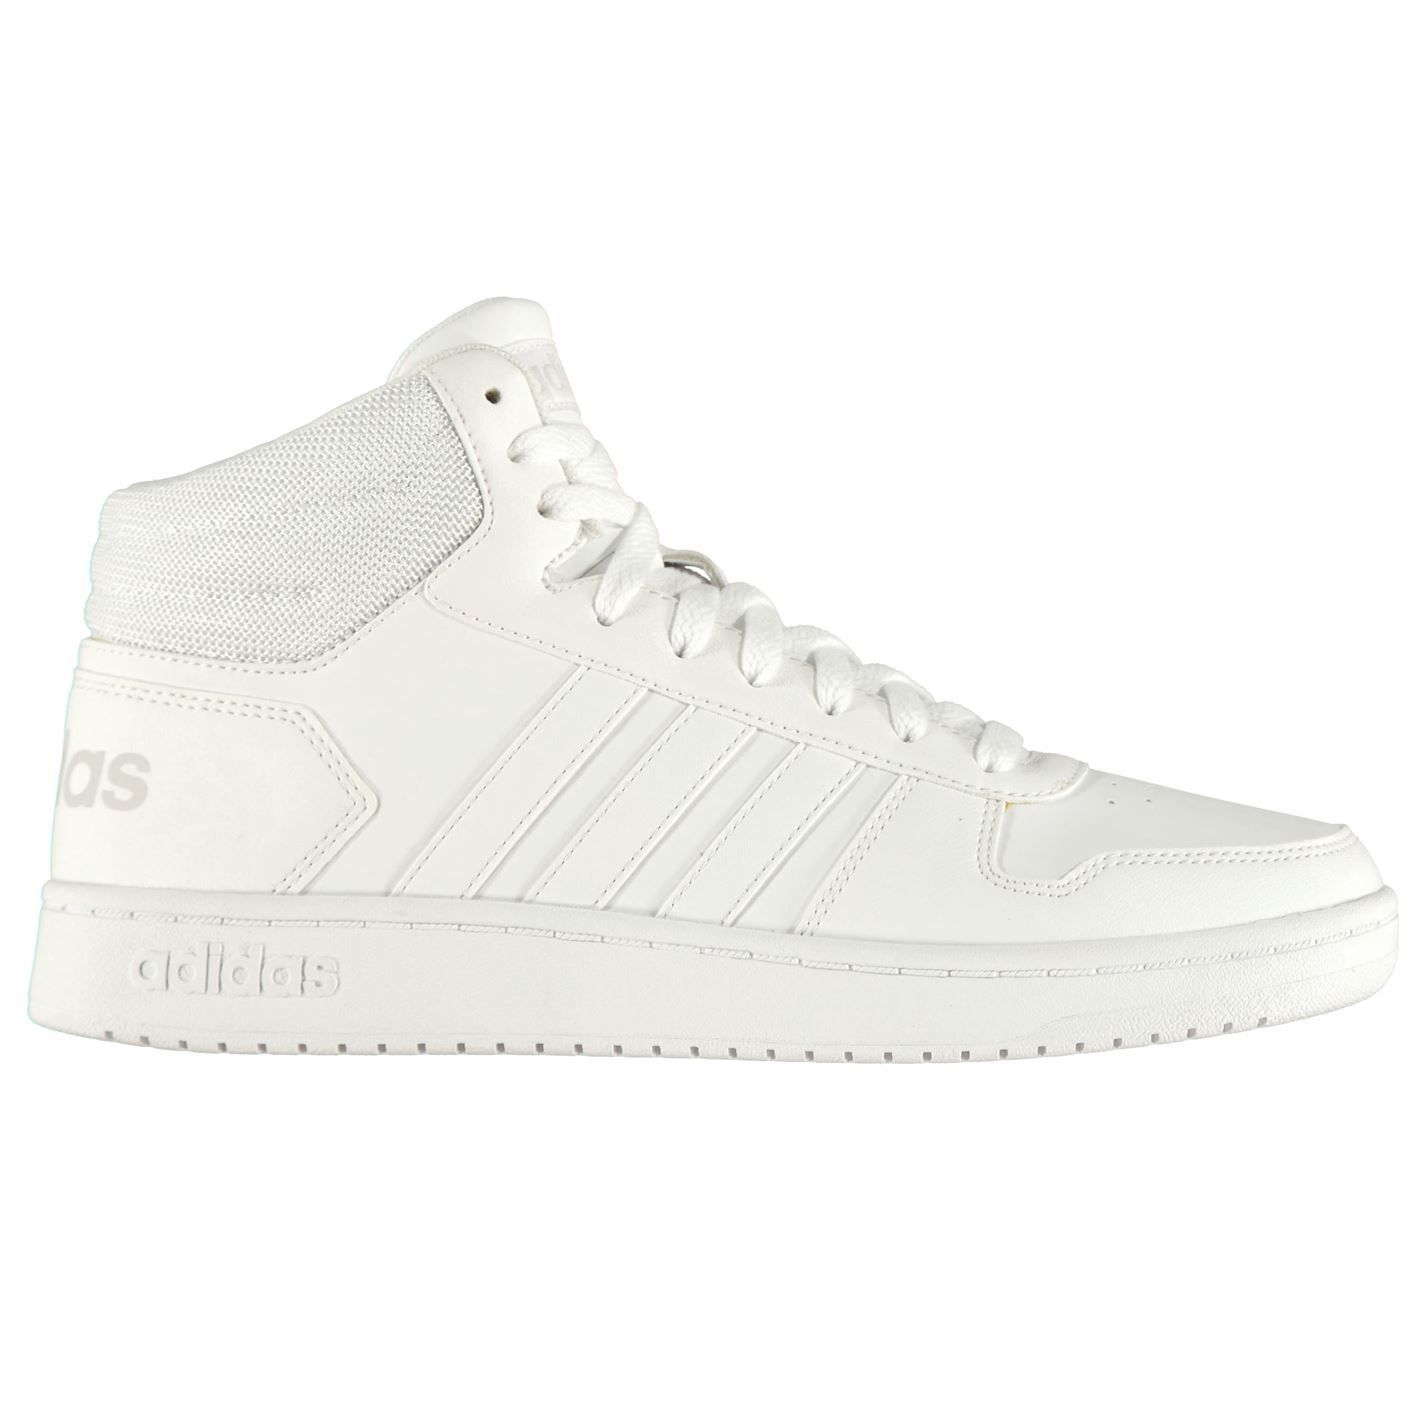 Adidas-Hoops-Mi-Montantes-Homme-athleisure-Chaussures-Baskets-Chaussures miniature 10